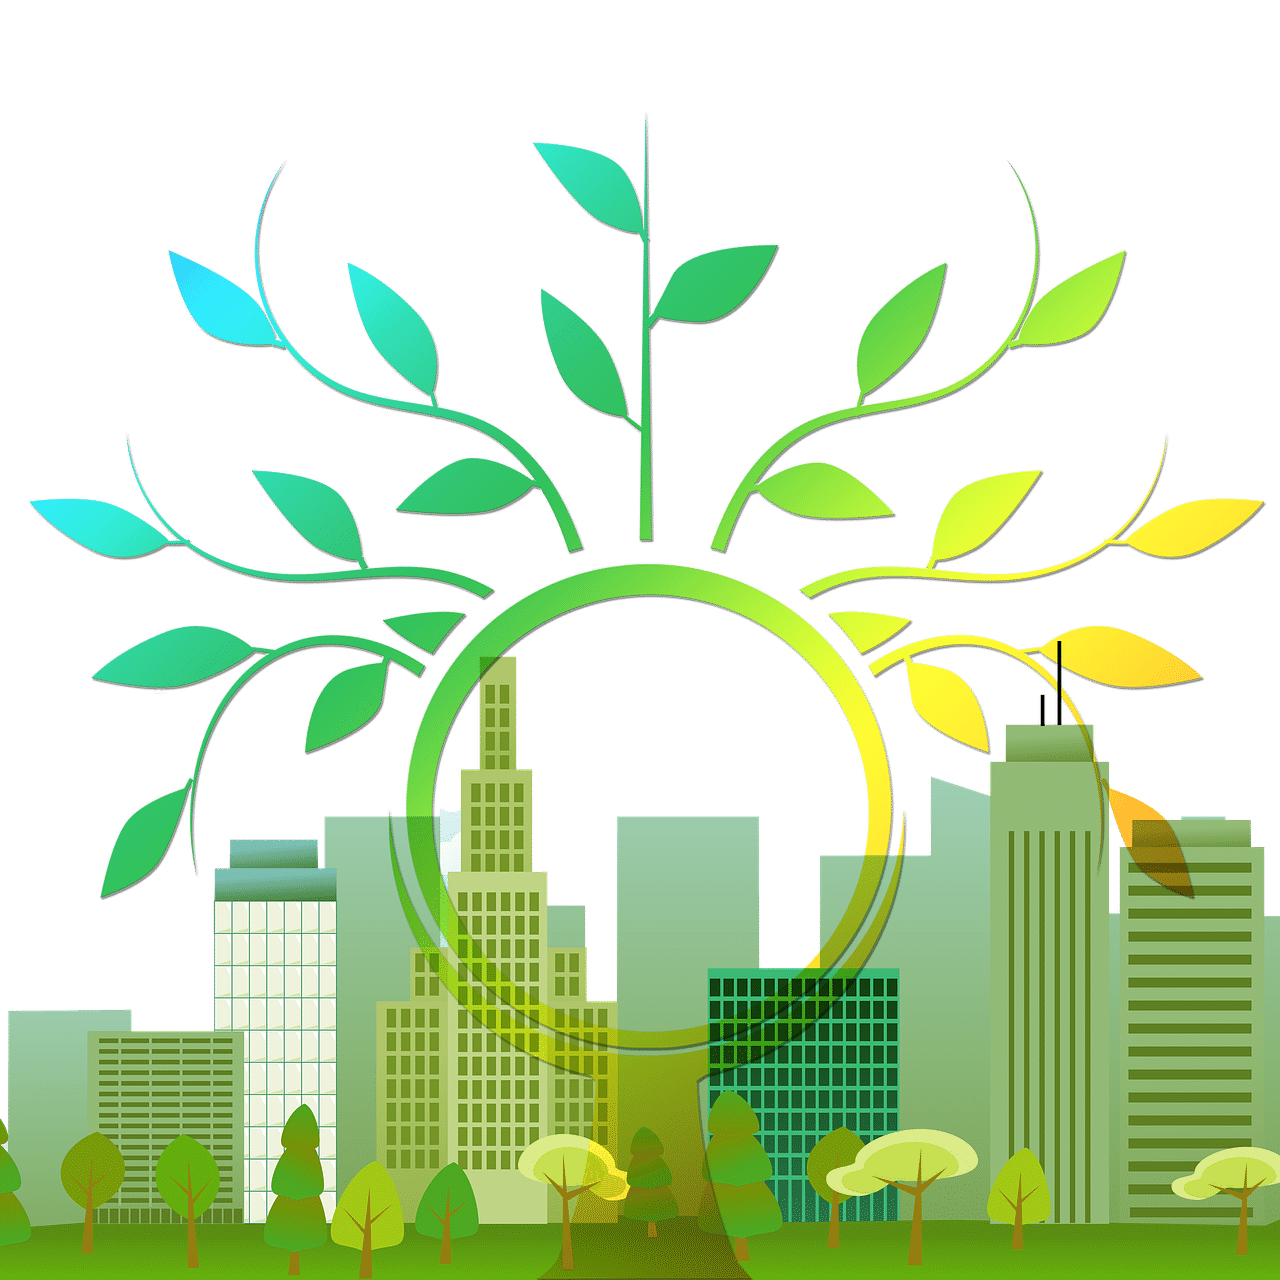 Environment clipart urban planning. Clean energy management by